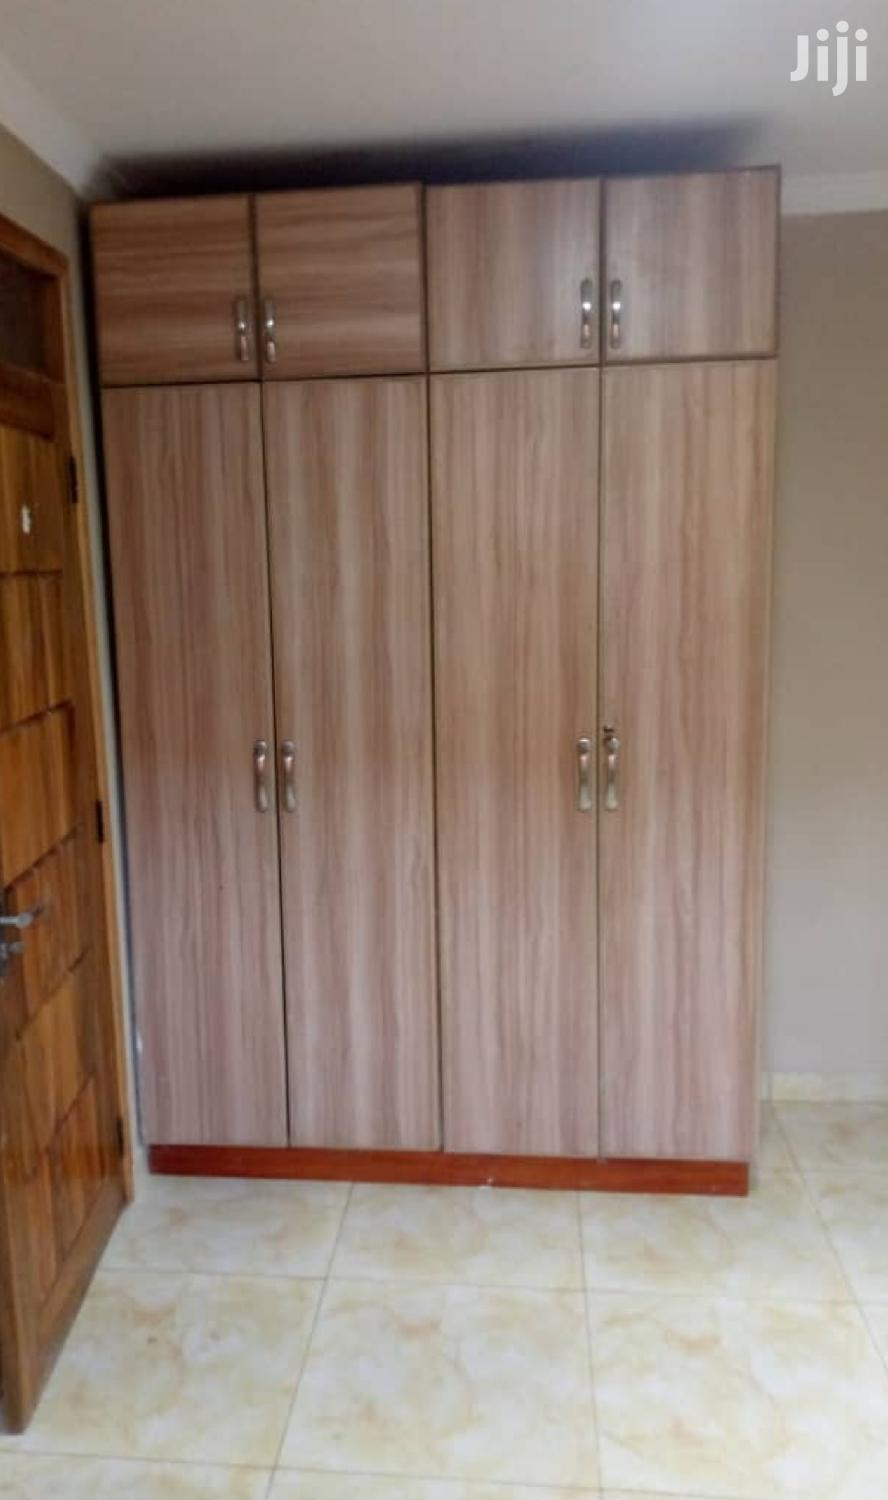 Ntinda 4 Bedrooms Duplex Stand Alone For Rent | Houses & Apartments For Rent for sale in Kampala, Central Region, Uganda